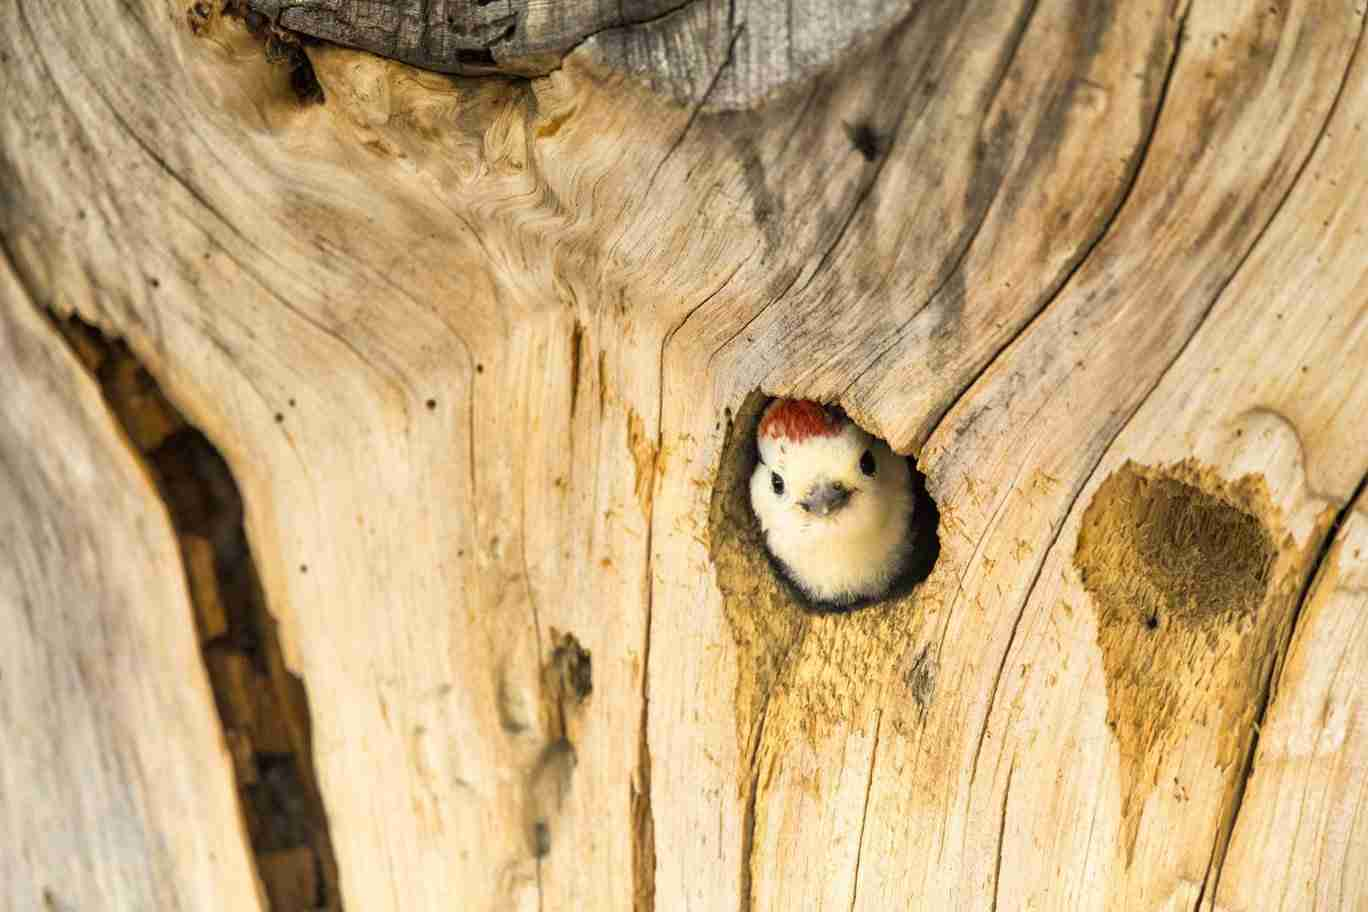 Print of a Red-Headed Woodpecker Chick Peeking from a Log